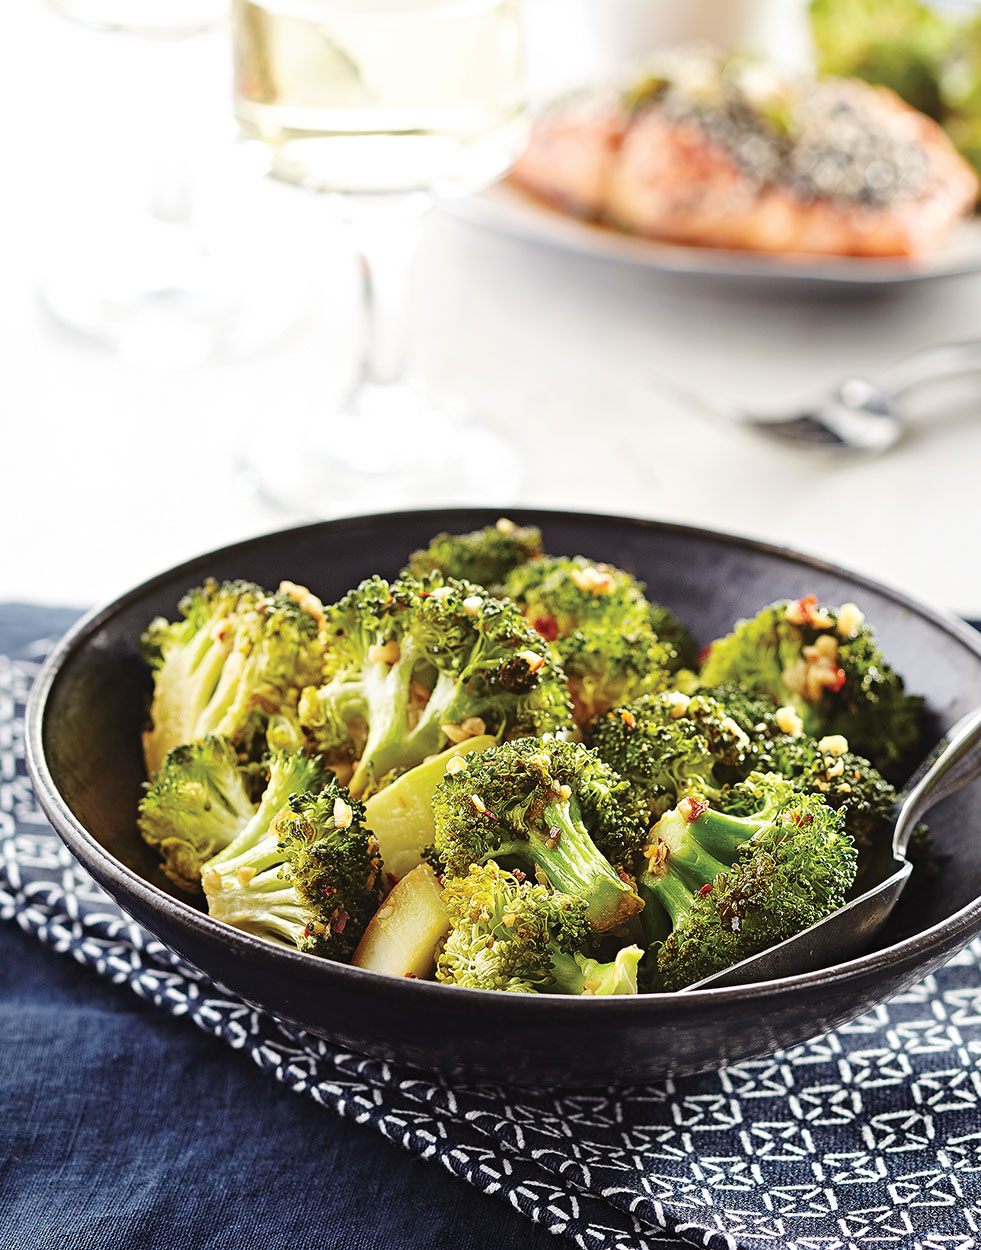 Asian Broccoli with garlic